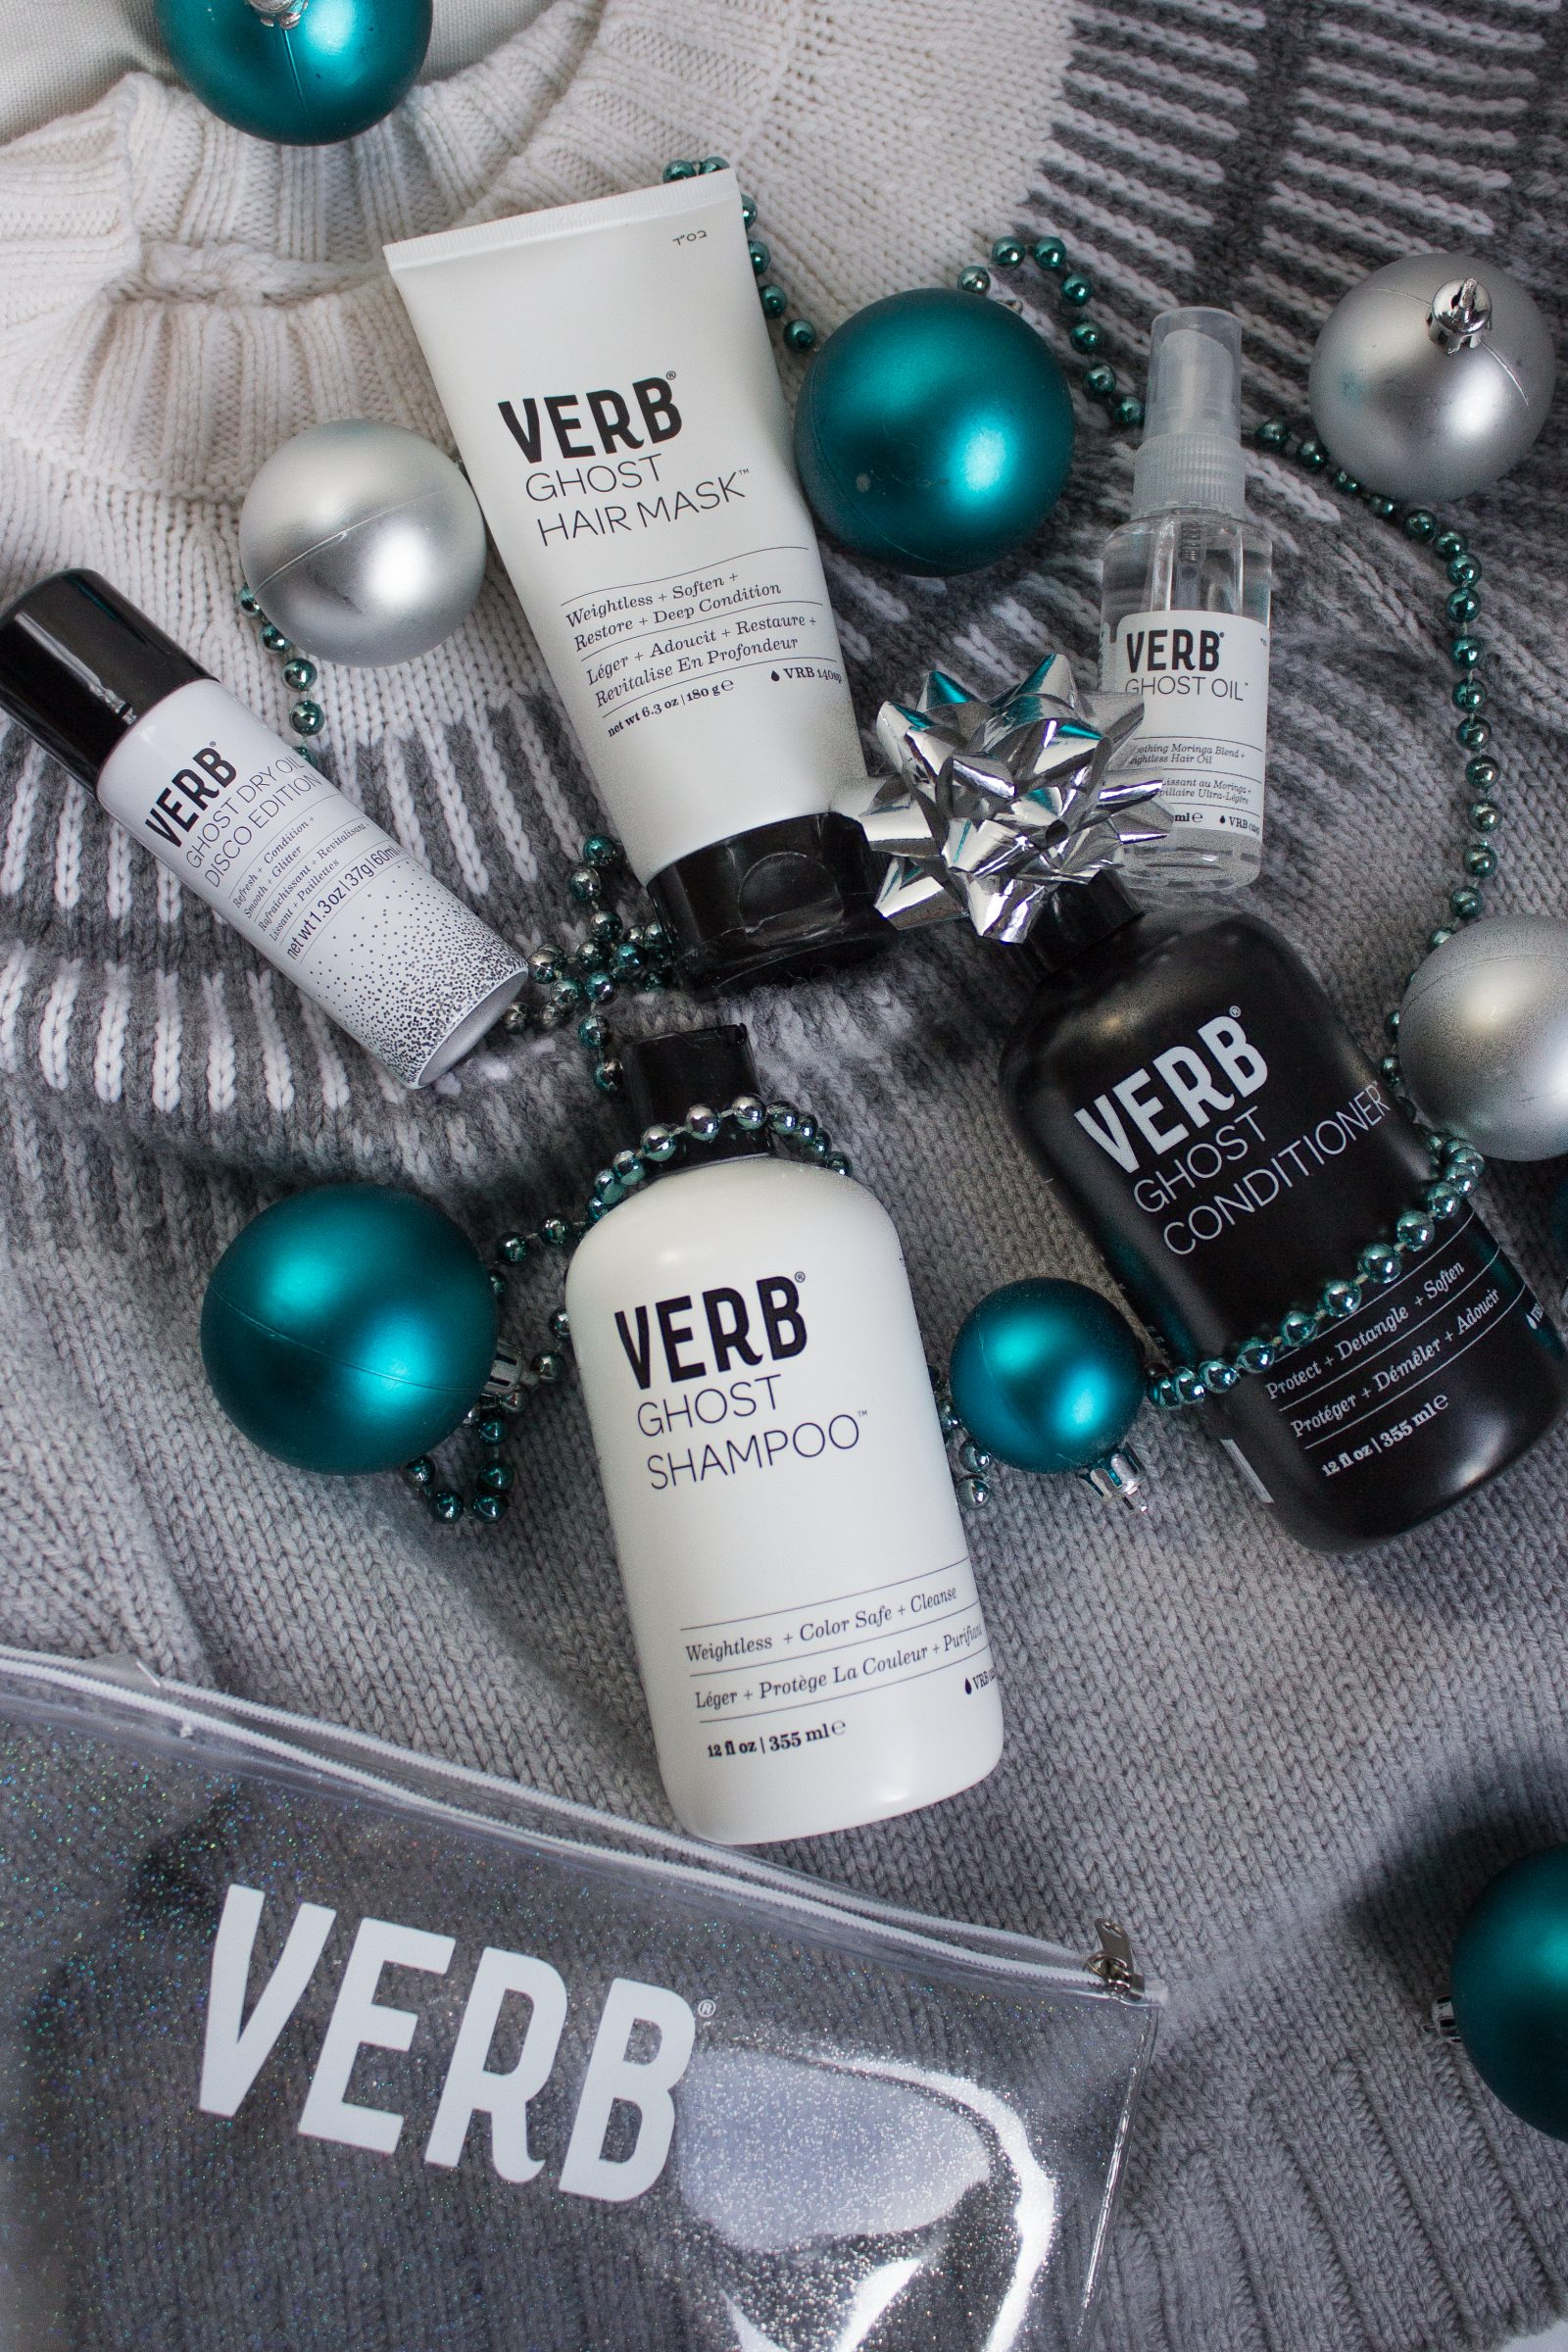 Hair products from Verb's Ghost Collection are sprawled out on a grey sweater, decorated with teal and silver ornaments